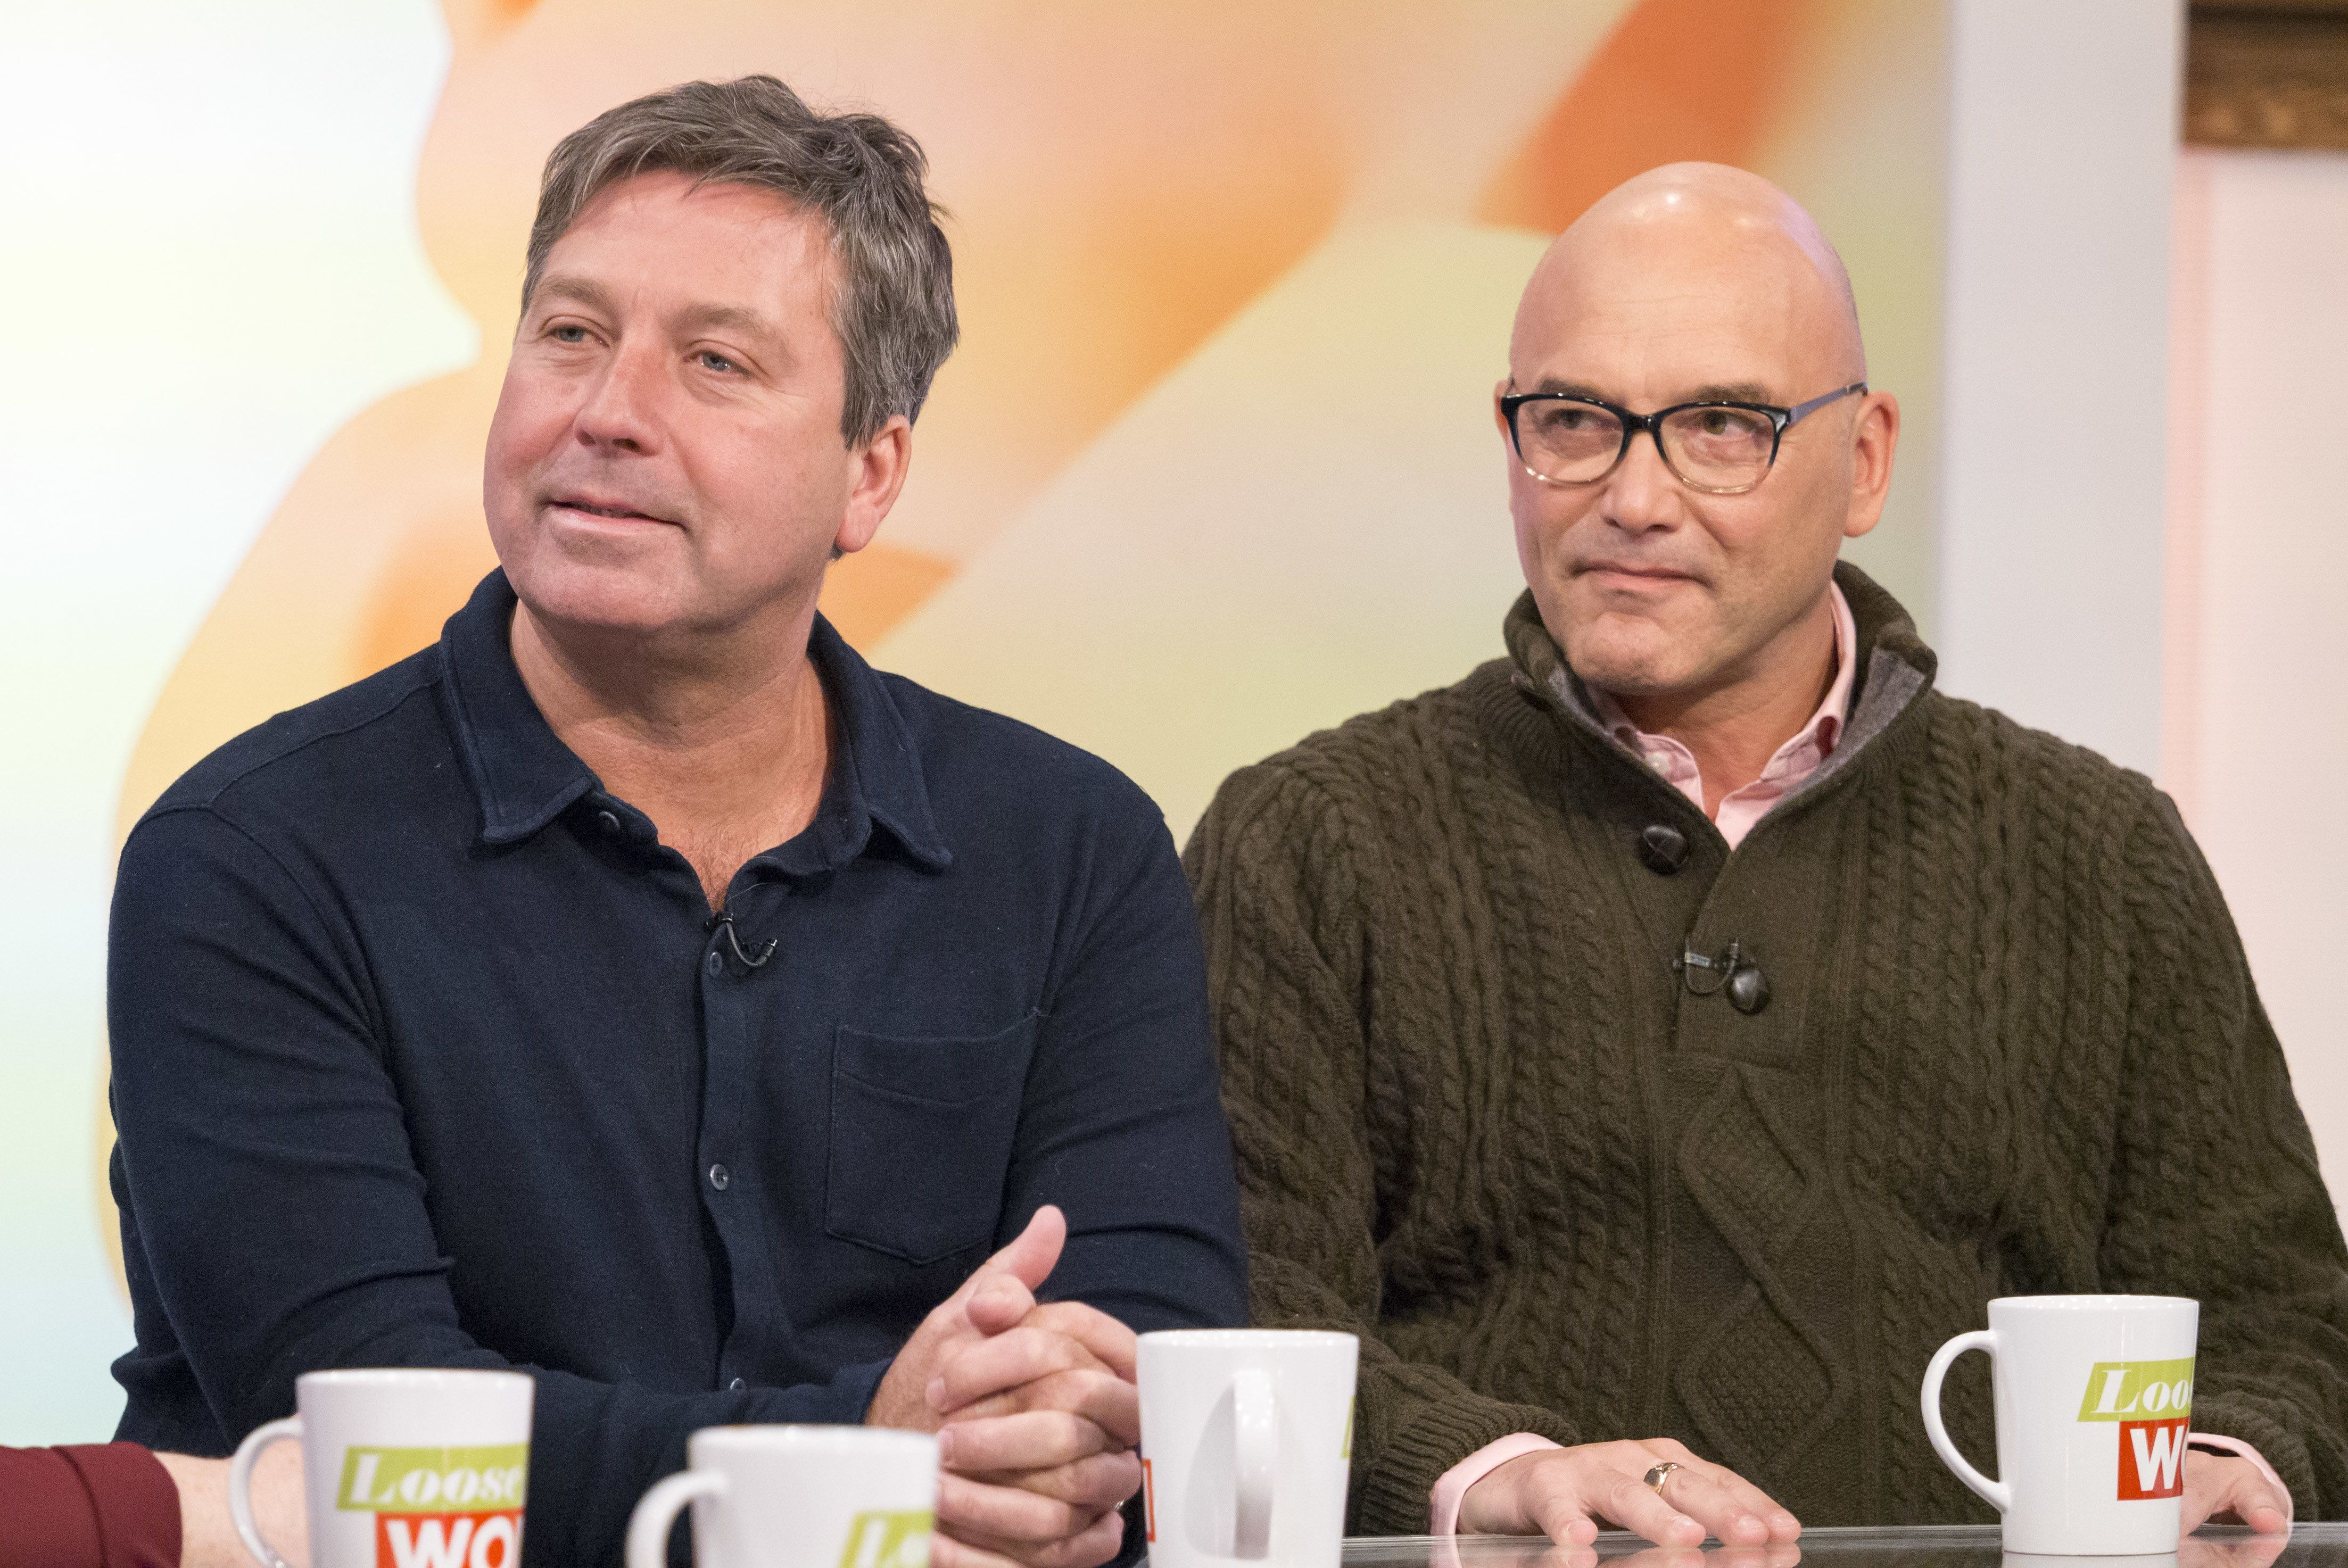 'Masterchef' Star John Torode 'Told Off' By BBC Bosses After Claiming He Wasn't Friends With Gregg Wallace